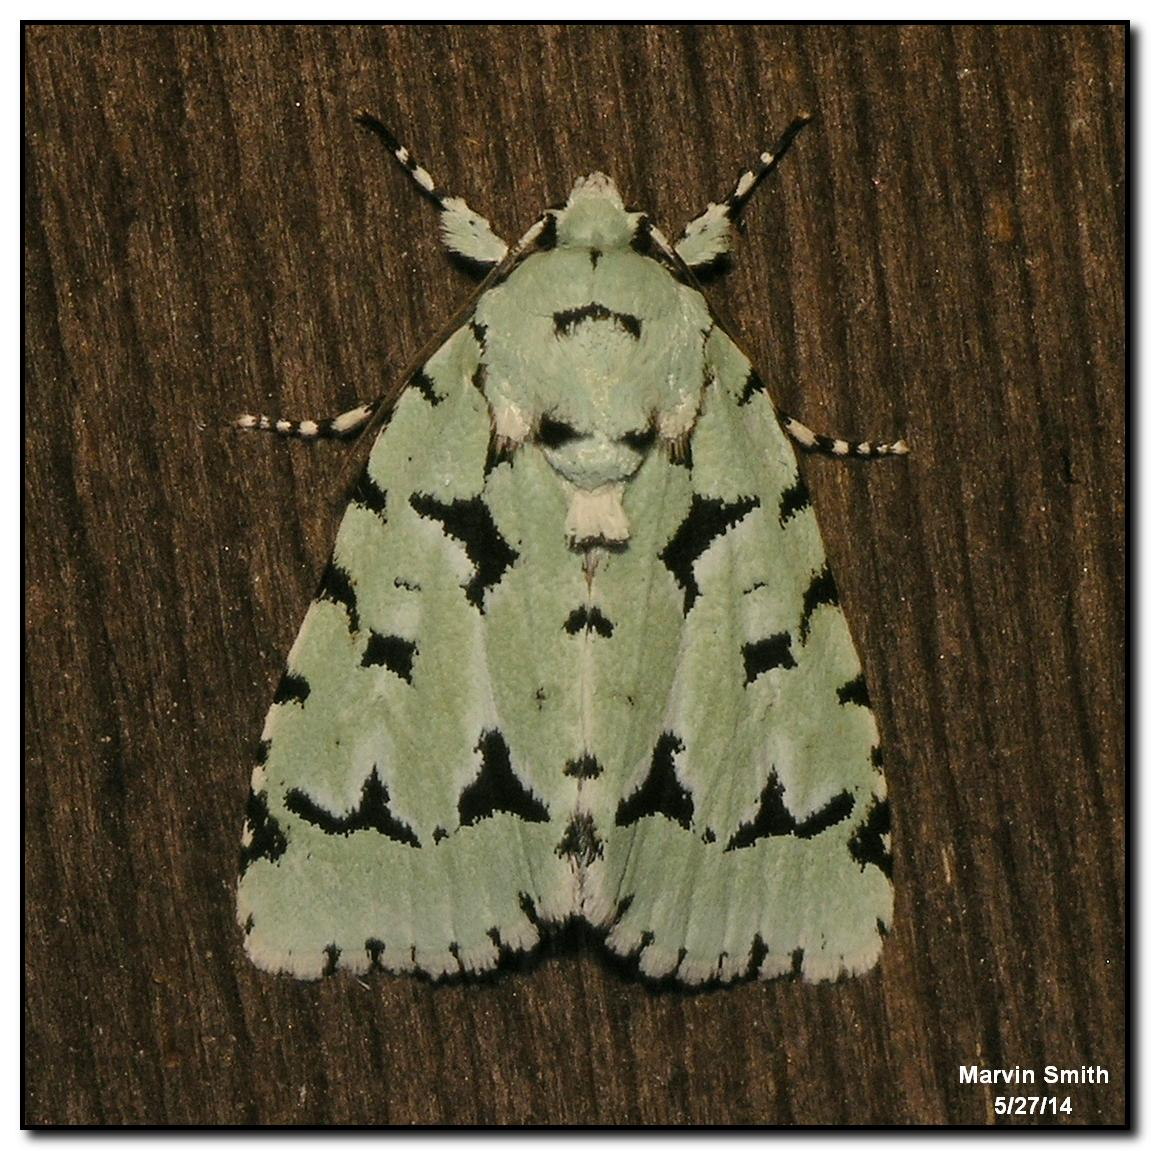 Green Marvel Moth (Acronicta fallax - 9281)